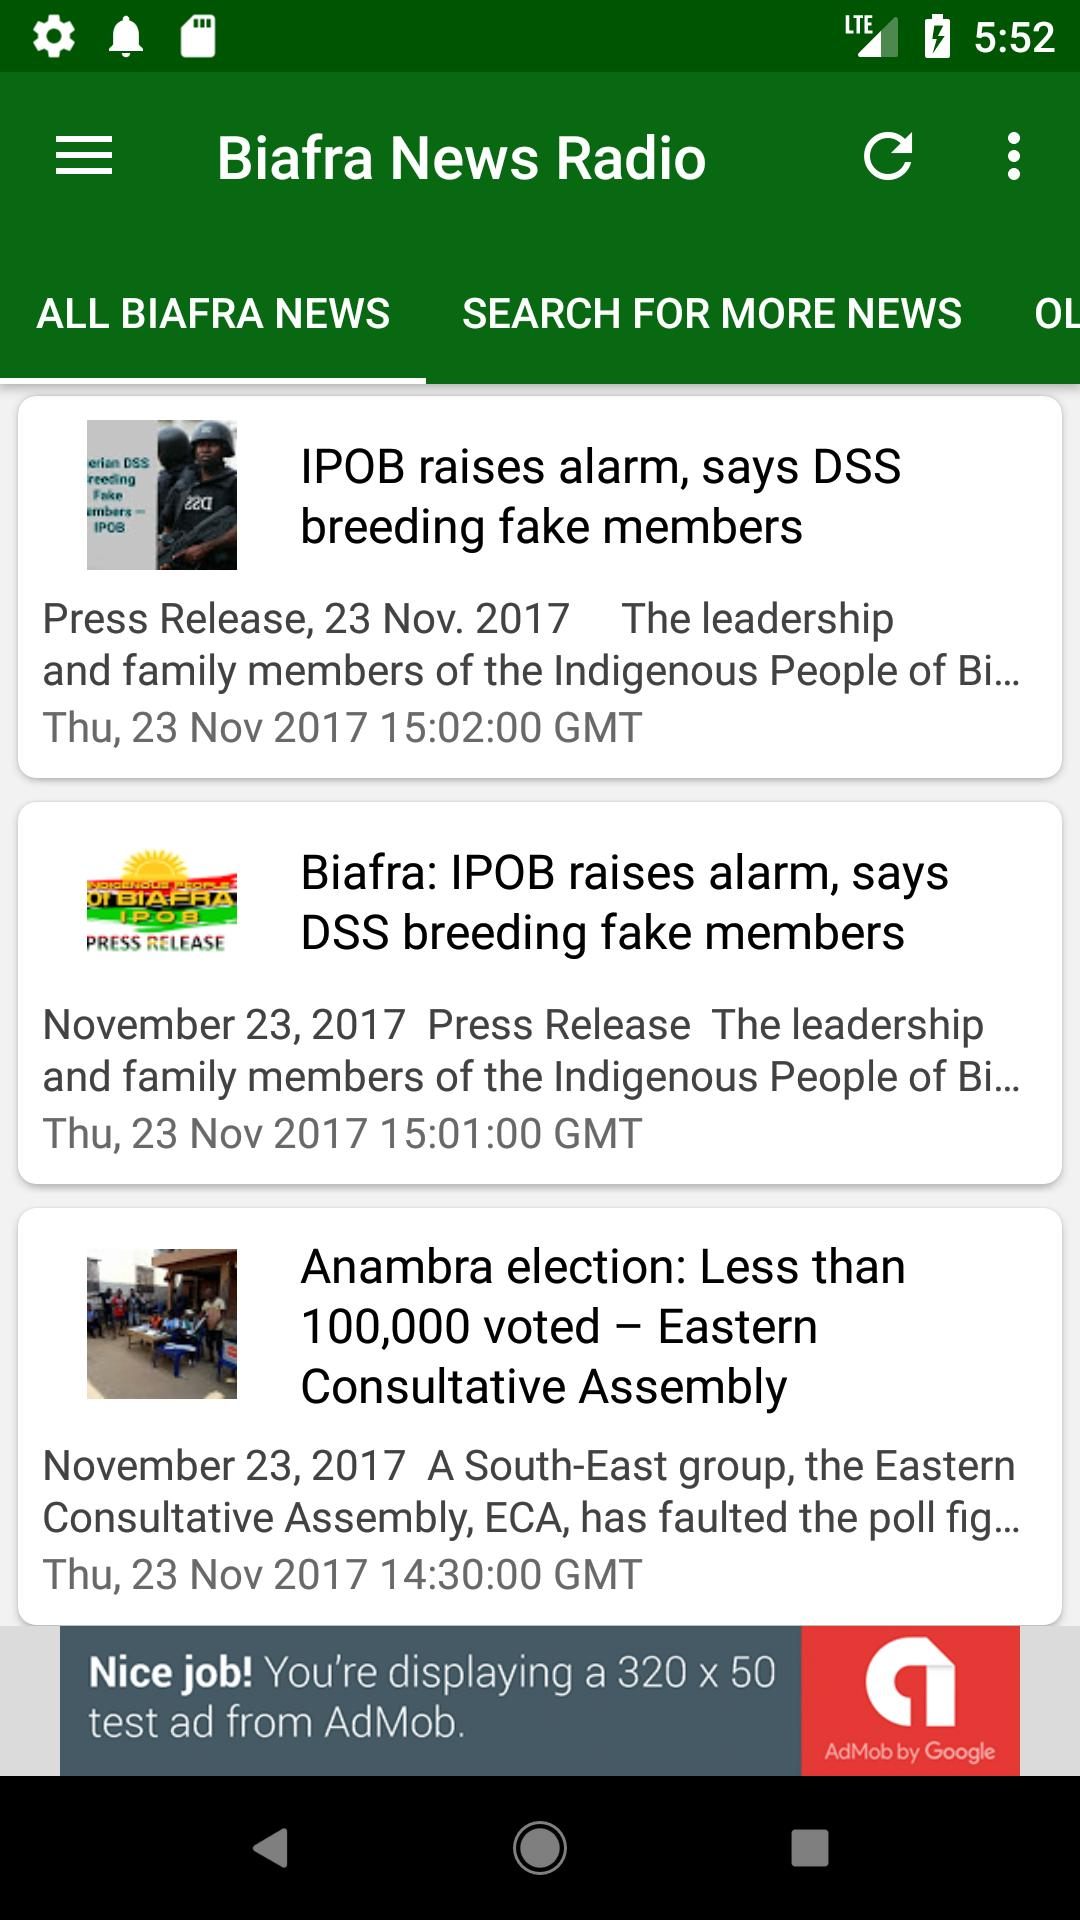 Biafra News: Radio, TV, News & Chat app for Android - APK